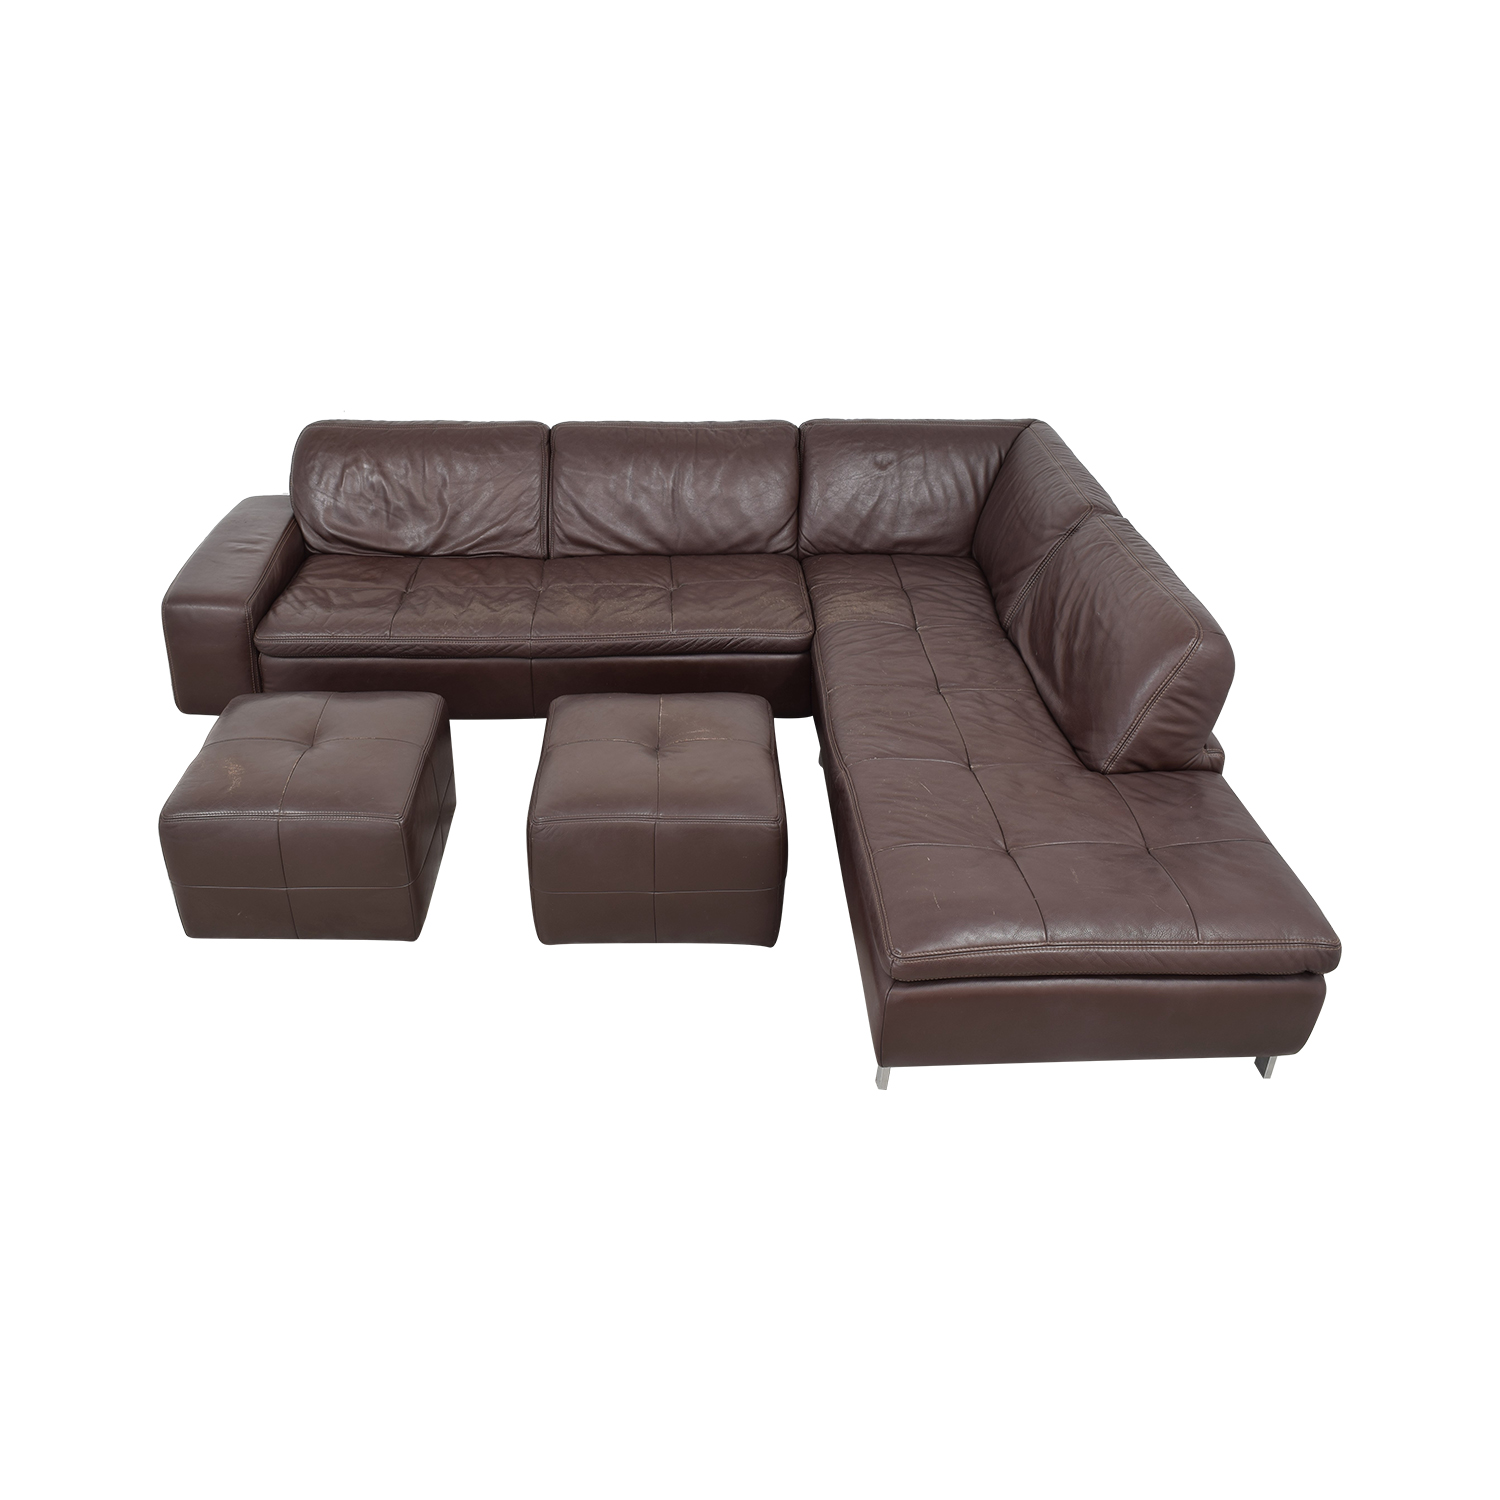 Bloomingdale's Bloomingdale's Sectional Sofa with Chaise and Ottomans nj